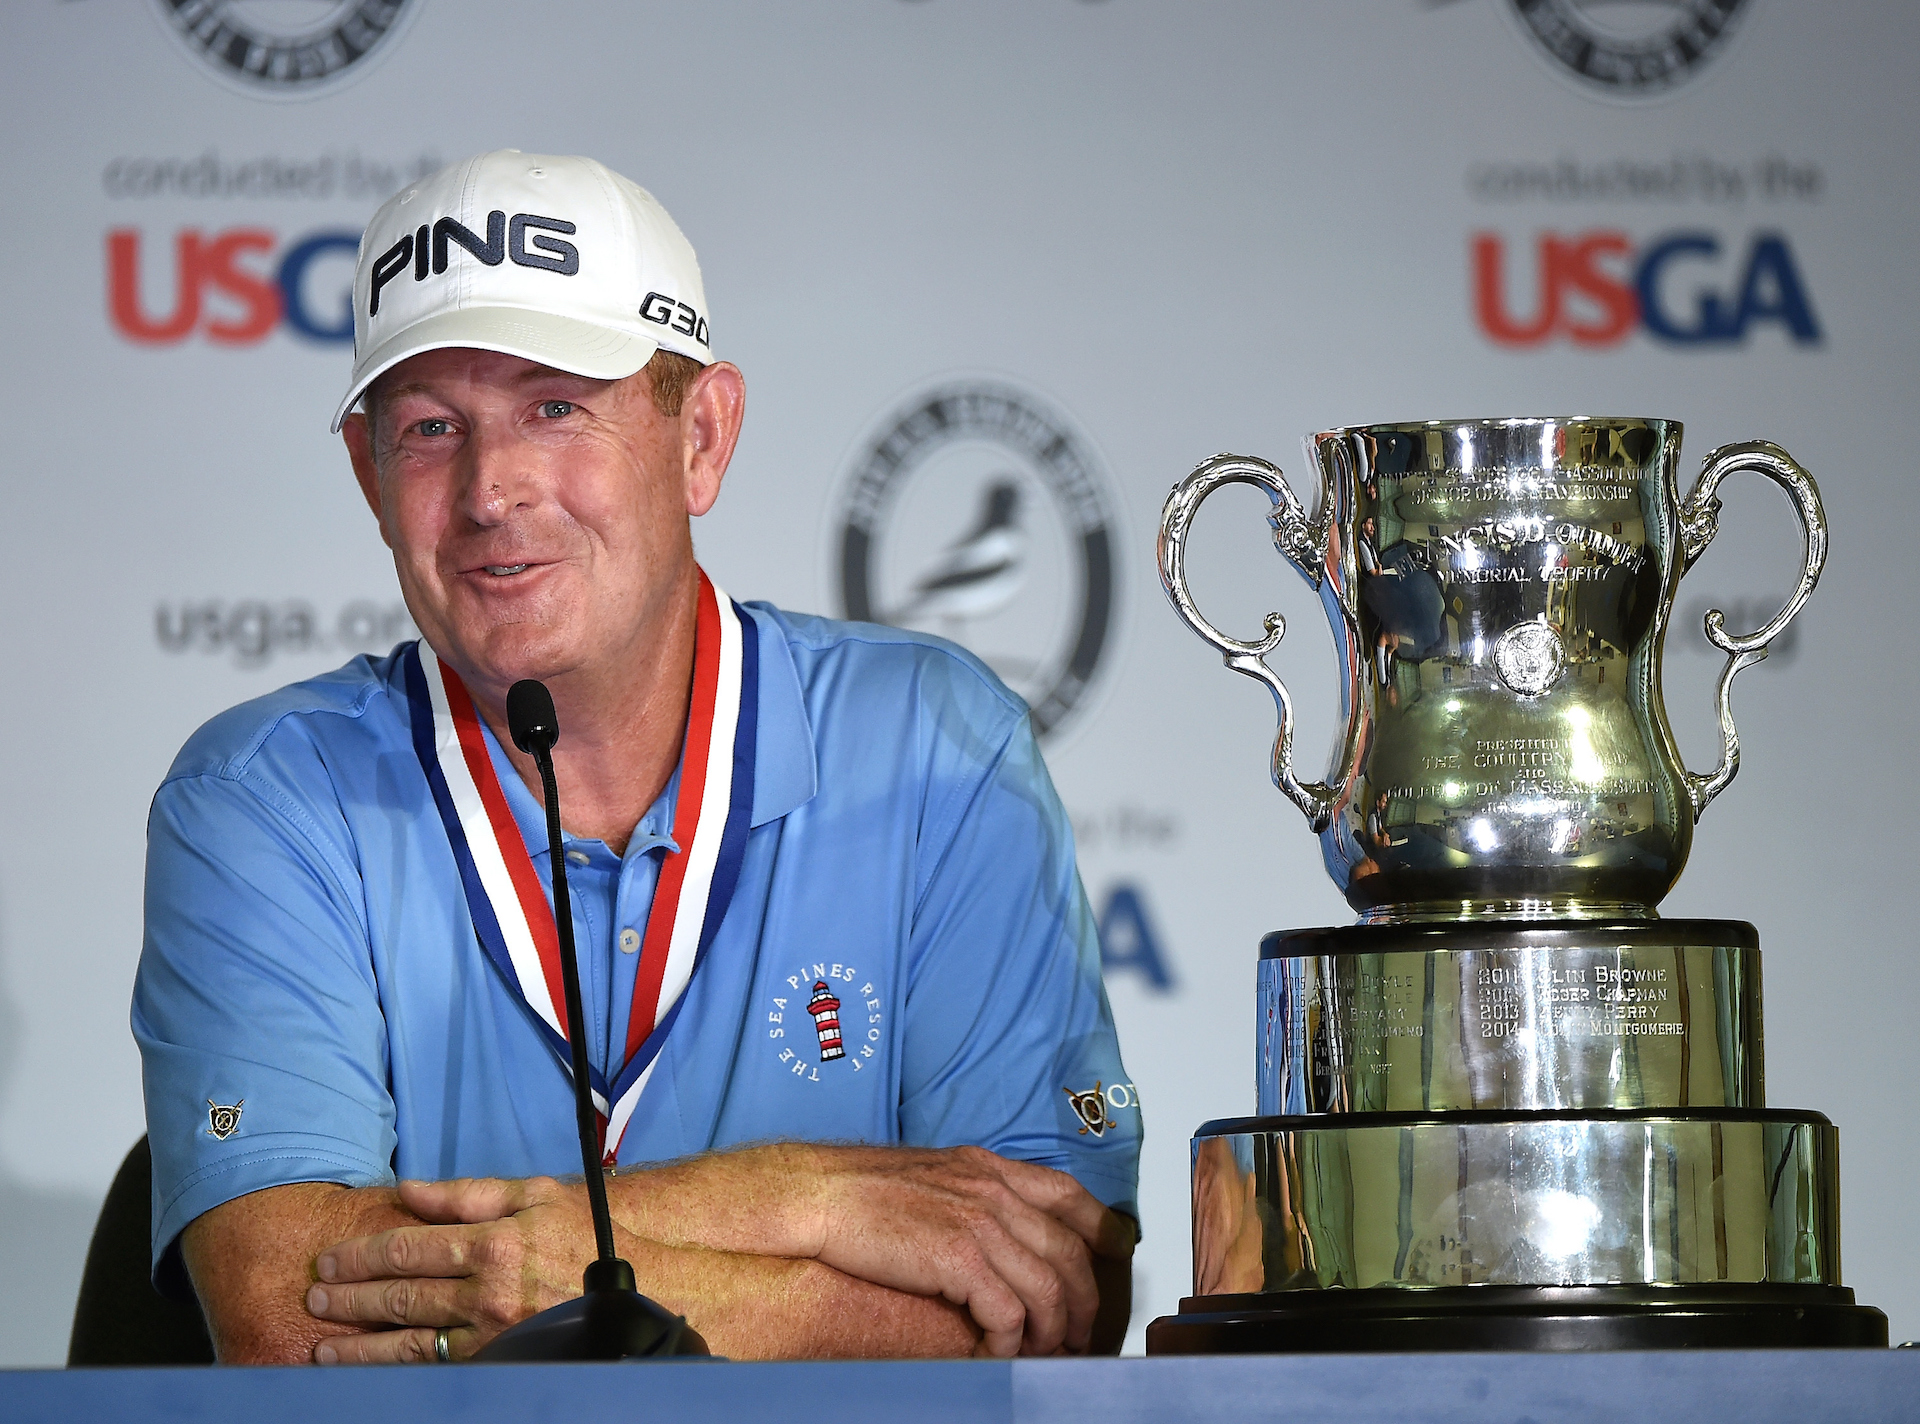 Maggert takes title from Monty